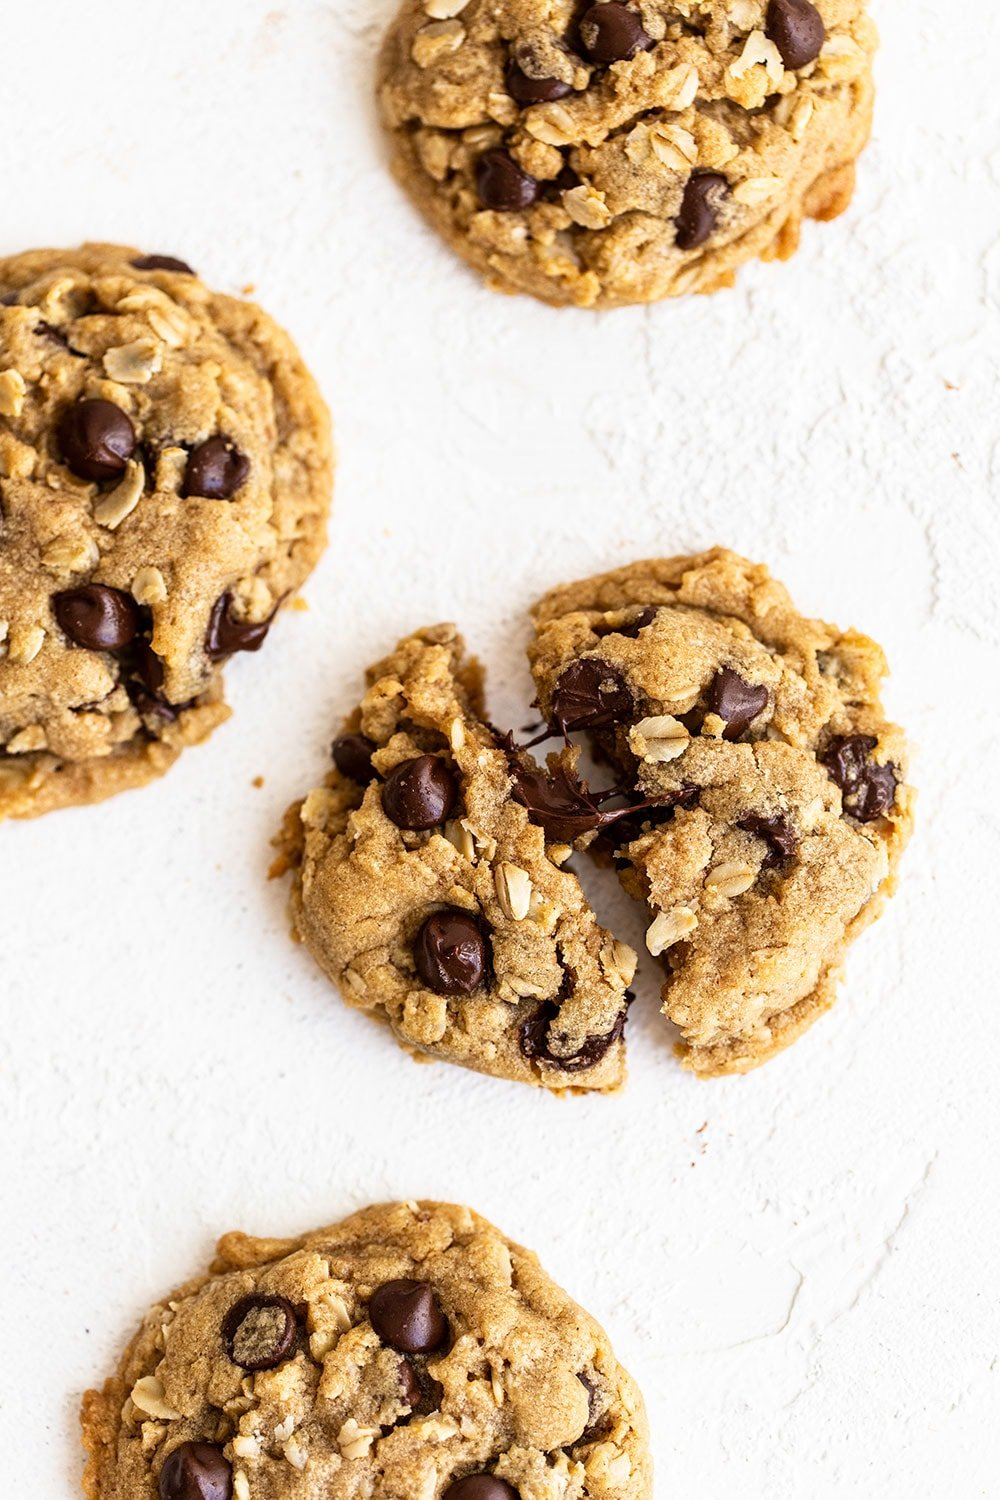 Peanut butter oatmeal chocolate chip cookies on the counter with one broken open with gooey chocolate chips